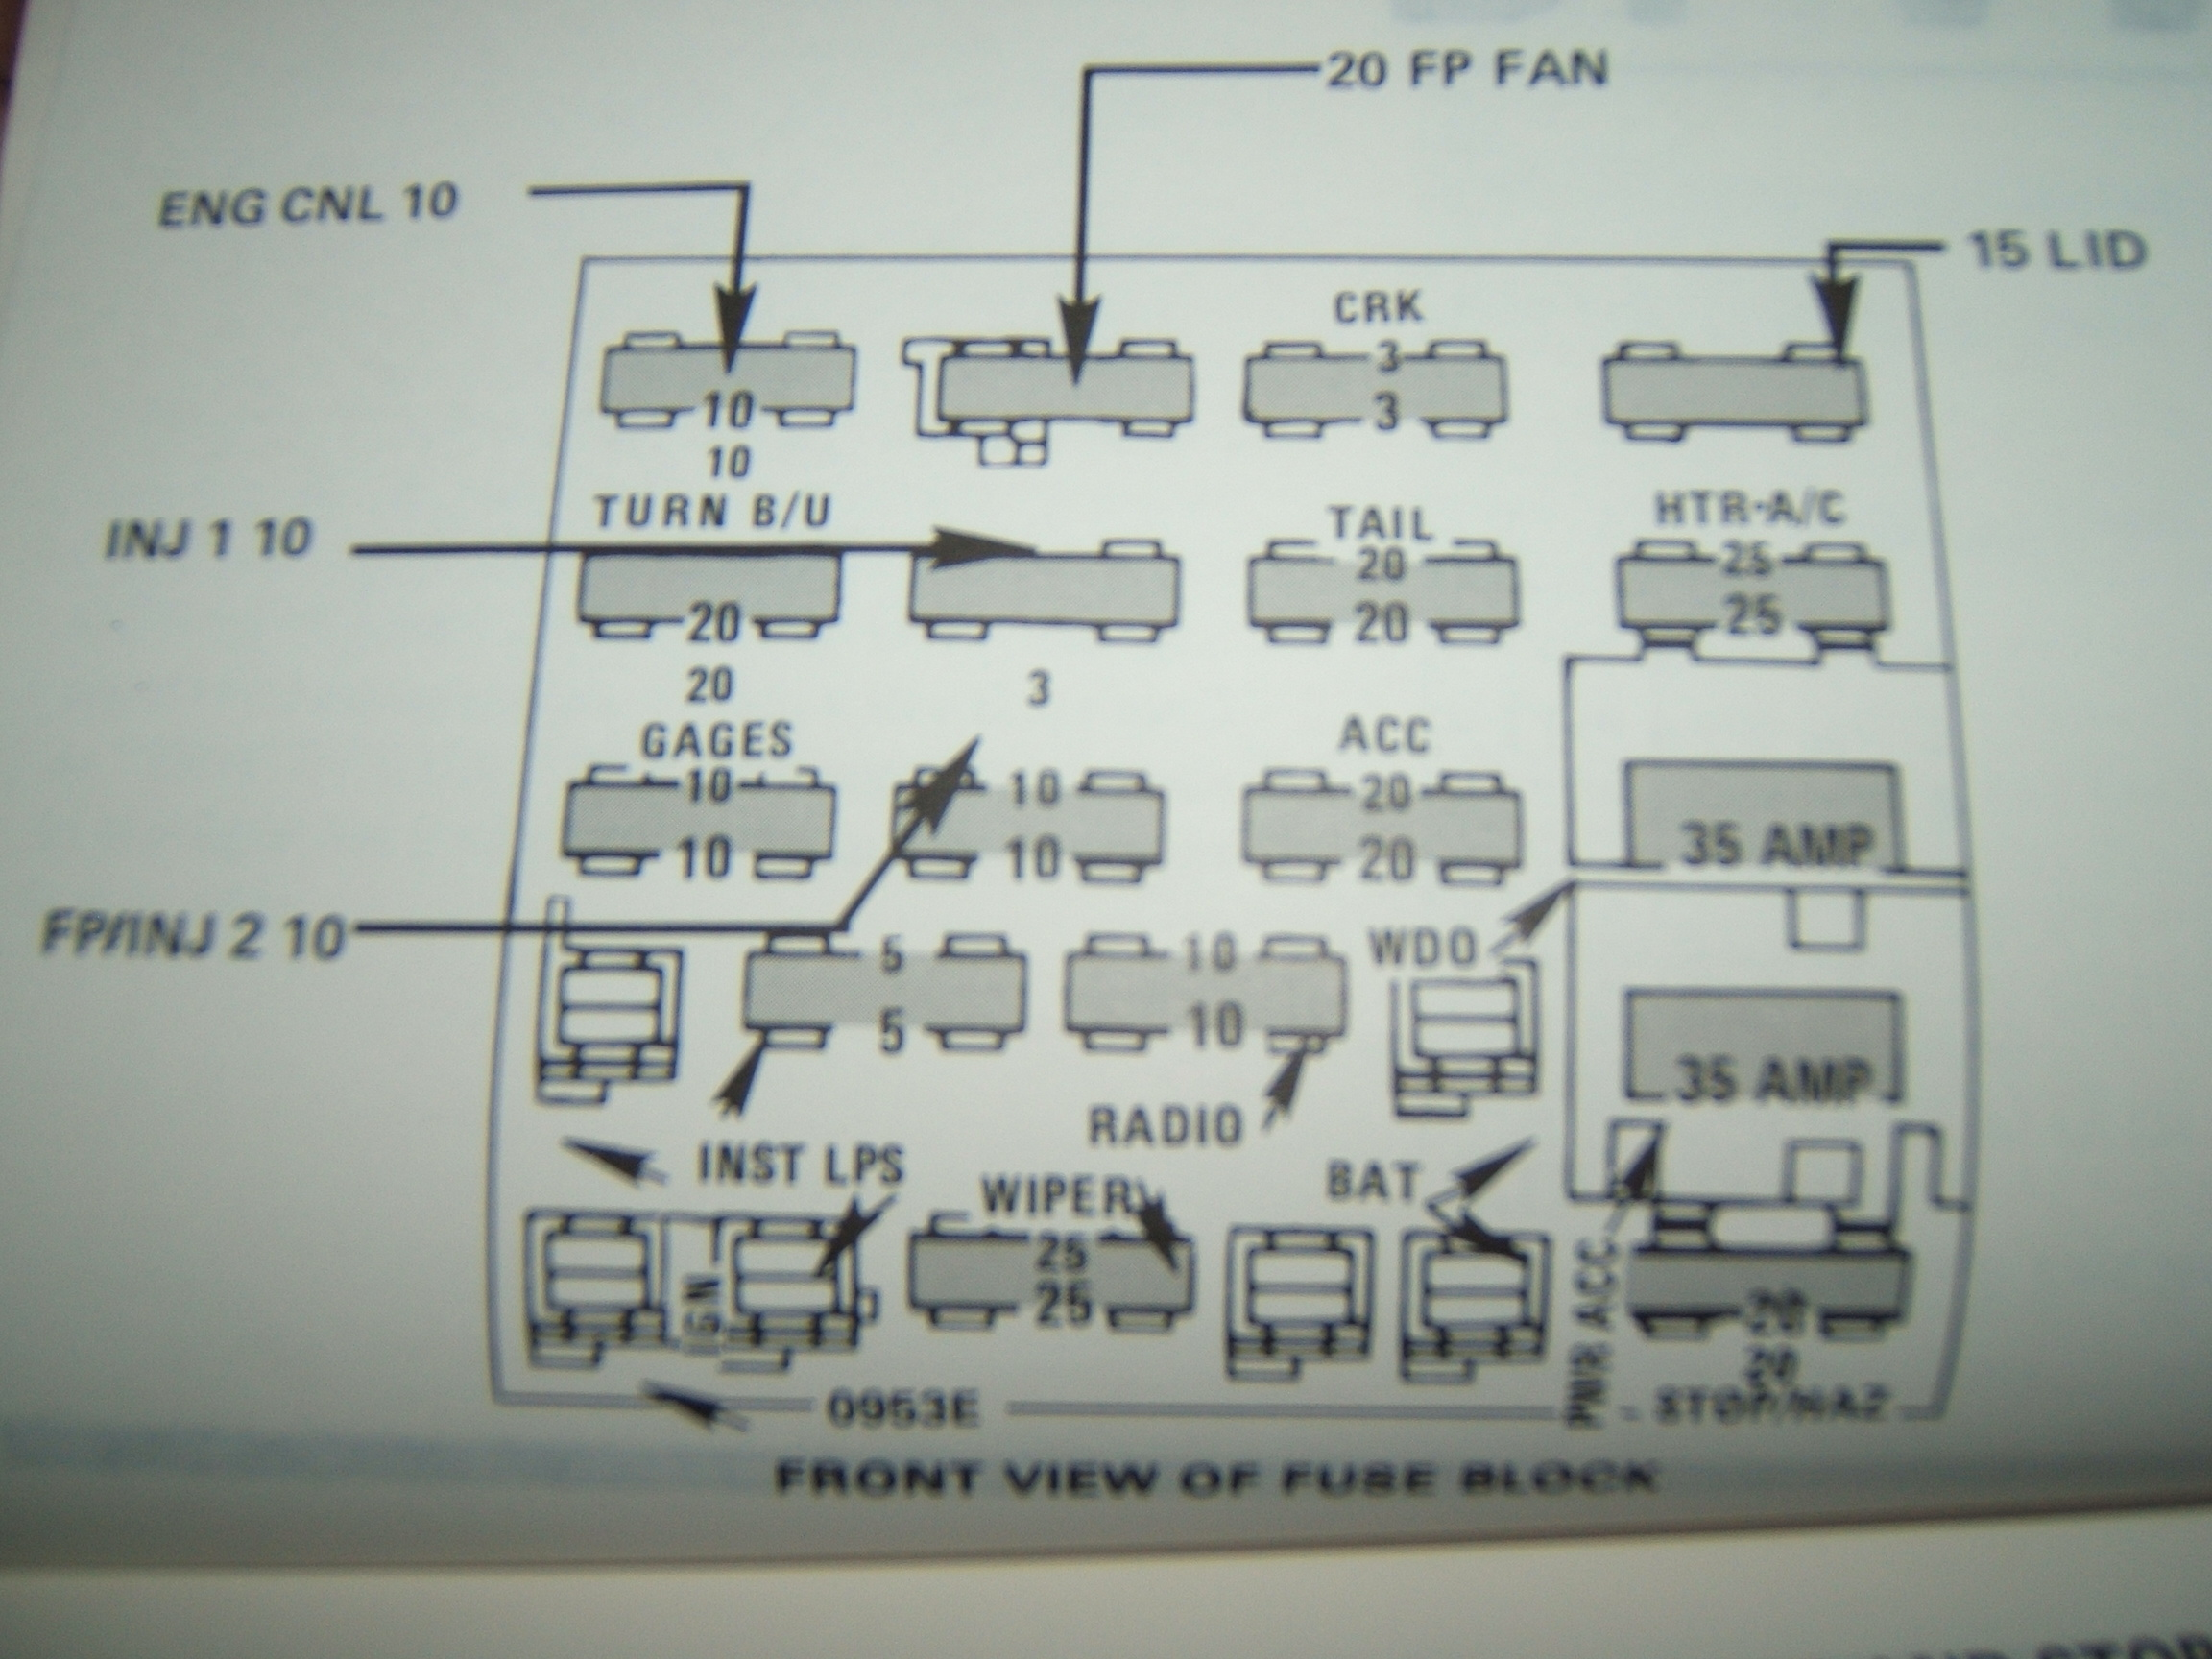 [SCHEMATICS_4CA]  4E88768 1988 Gmc S15 Fuse Box Diagram | Wiring Library | 1988 Gmc S15 Fuse Box |  | Wiring Library